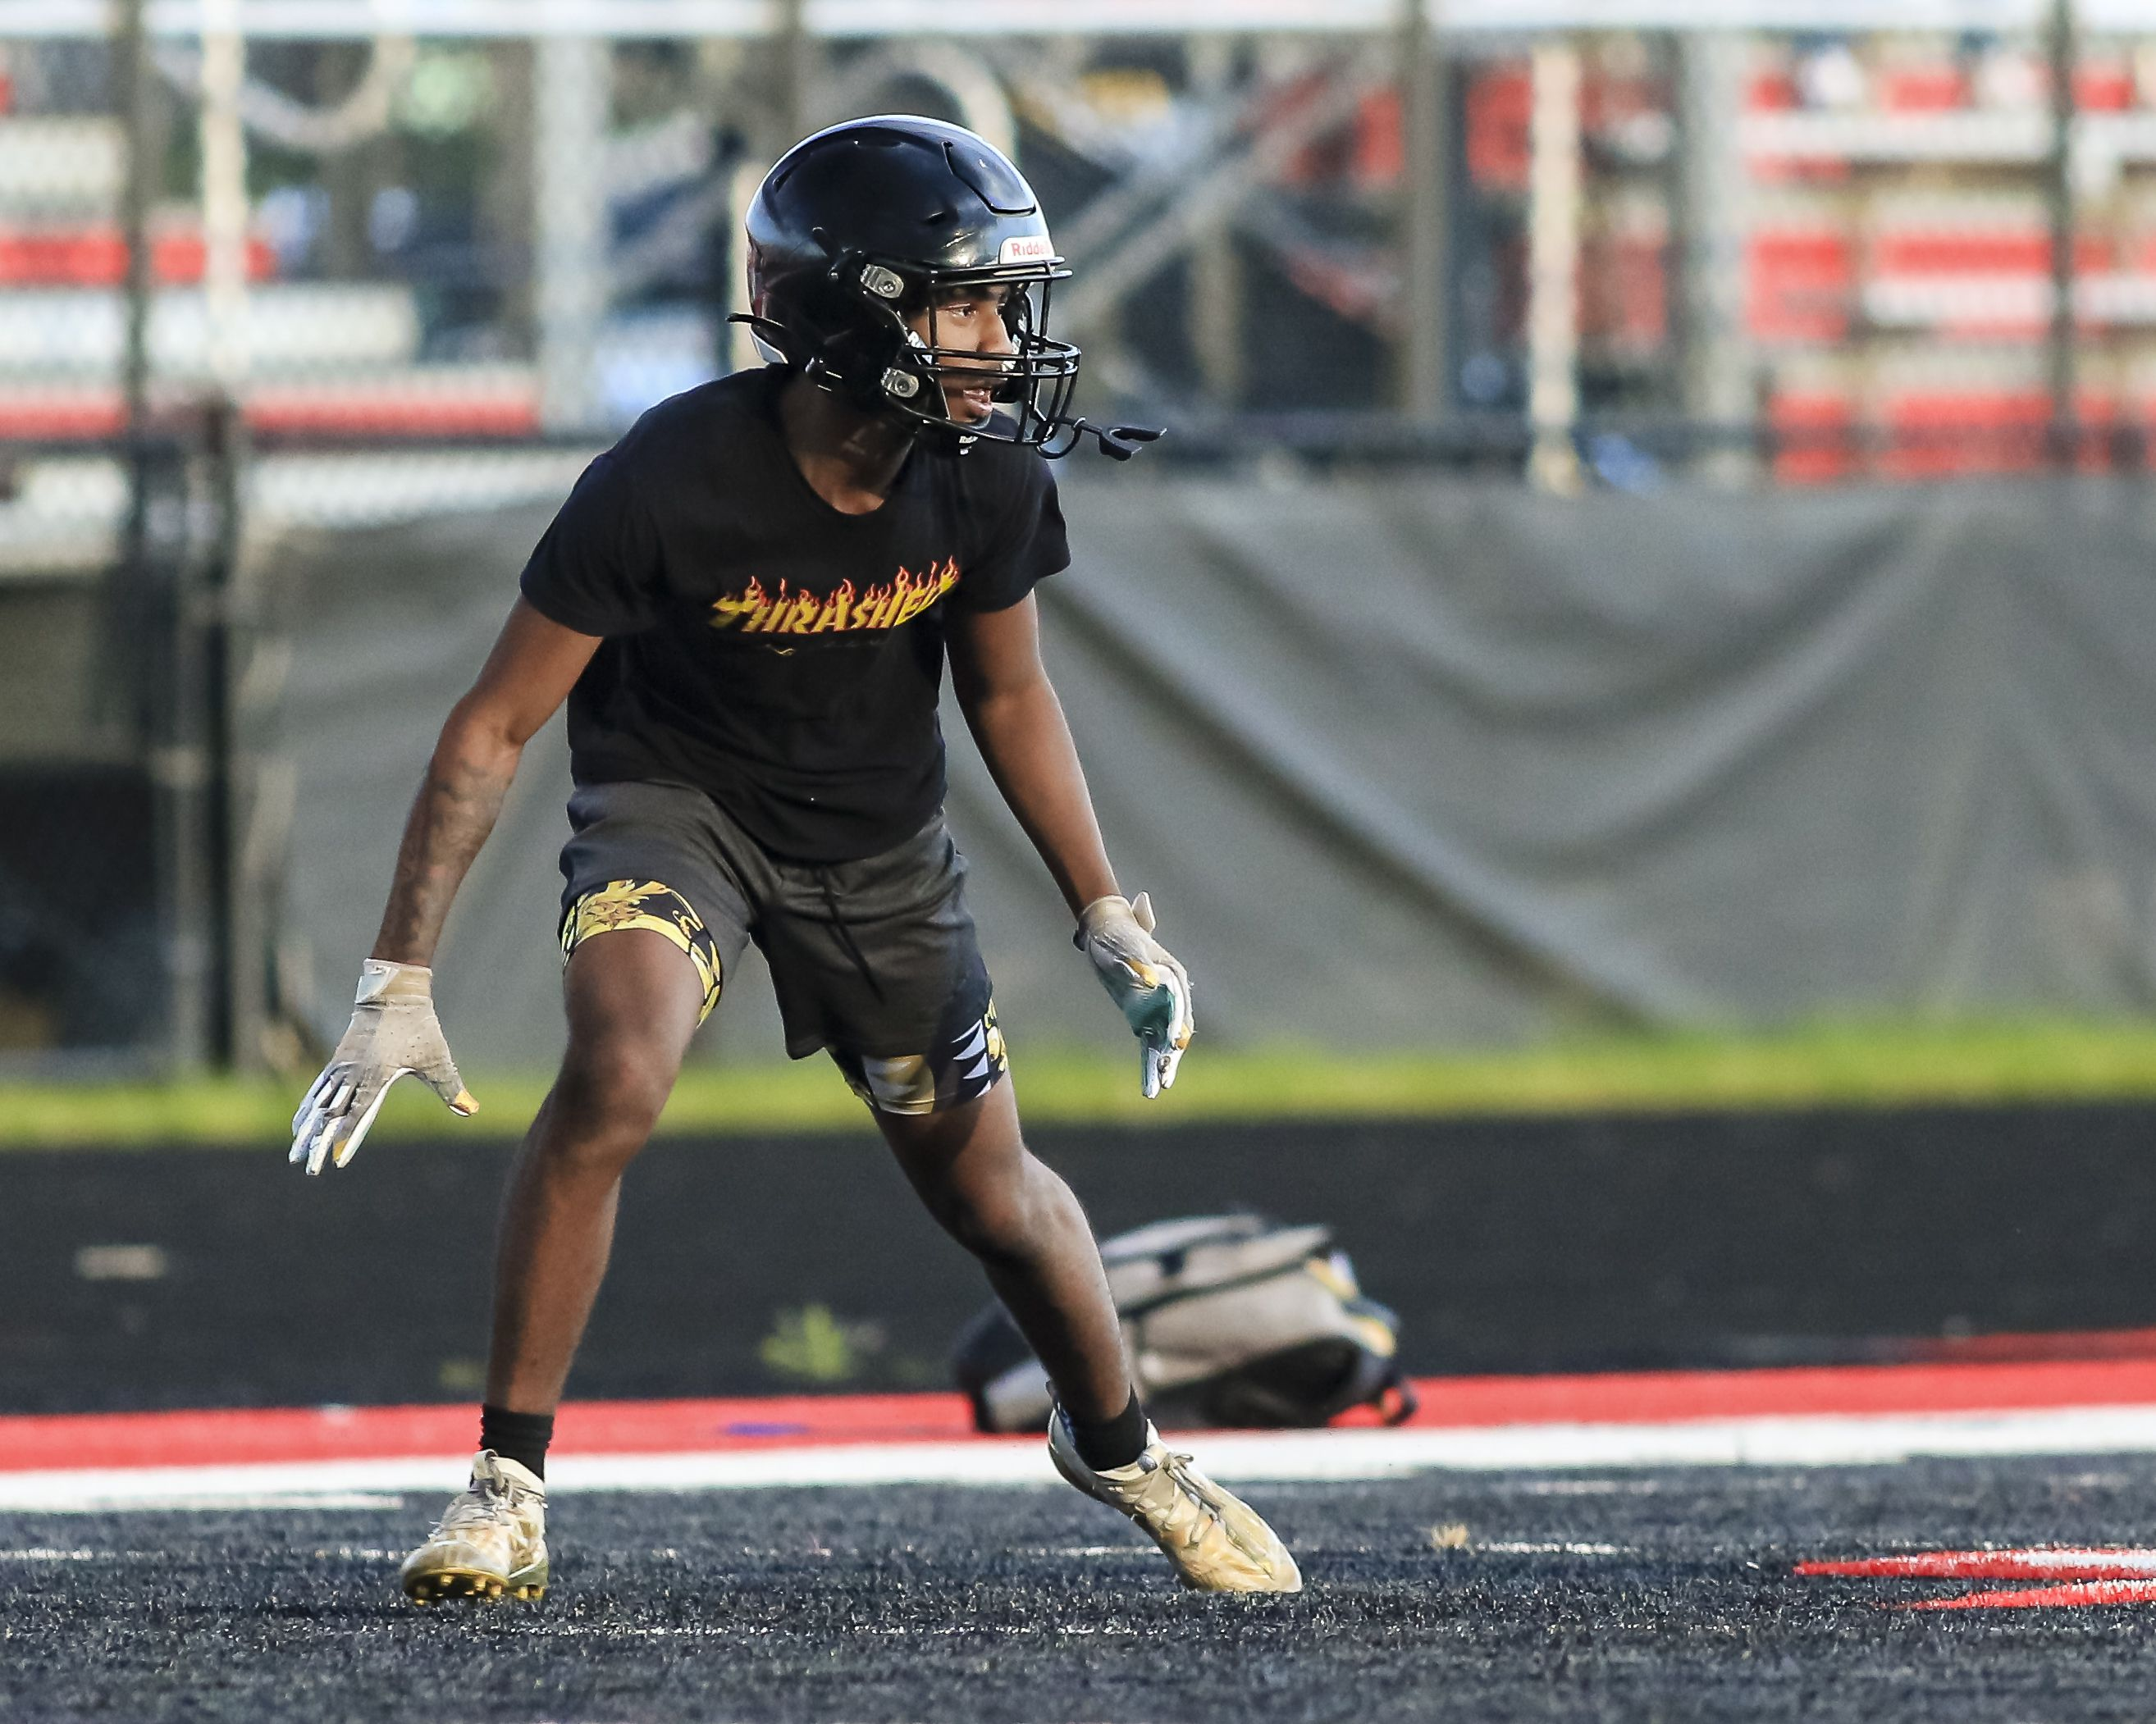 Bolingbrook's Amon Walker during Football 7 on 7 at Bolingbrook. Tuesday July 13,2021.  Gary E Duncan Sr. for Shaw Local.